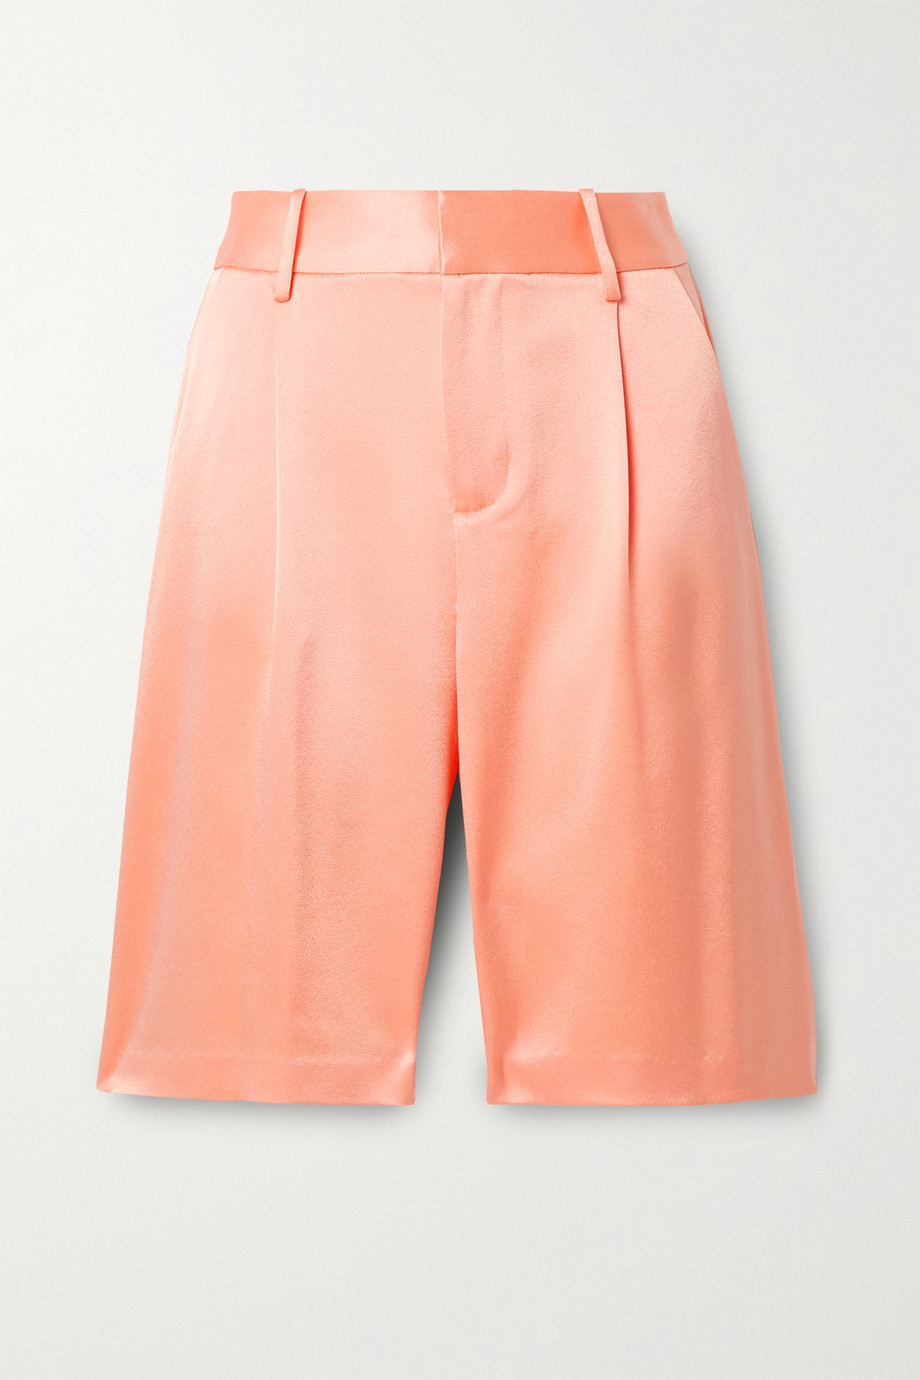 Alice + Olivia Eric pleated satin-crepe shorts